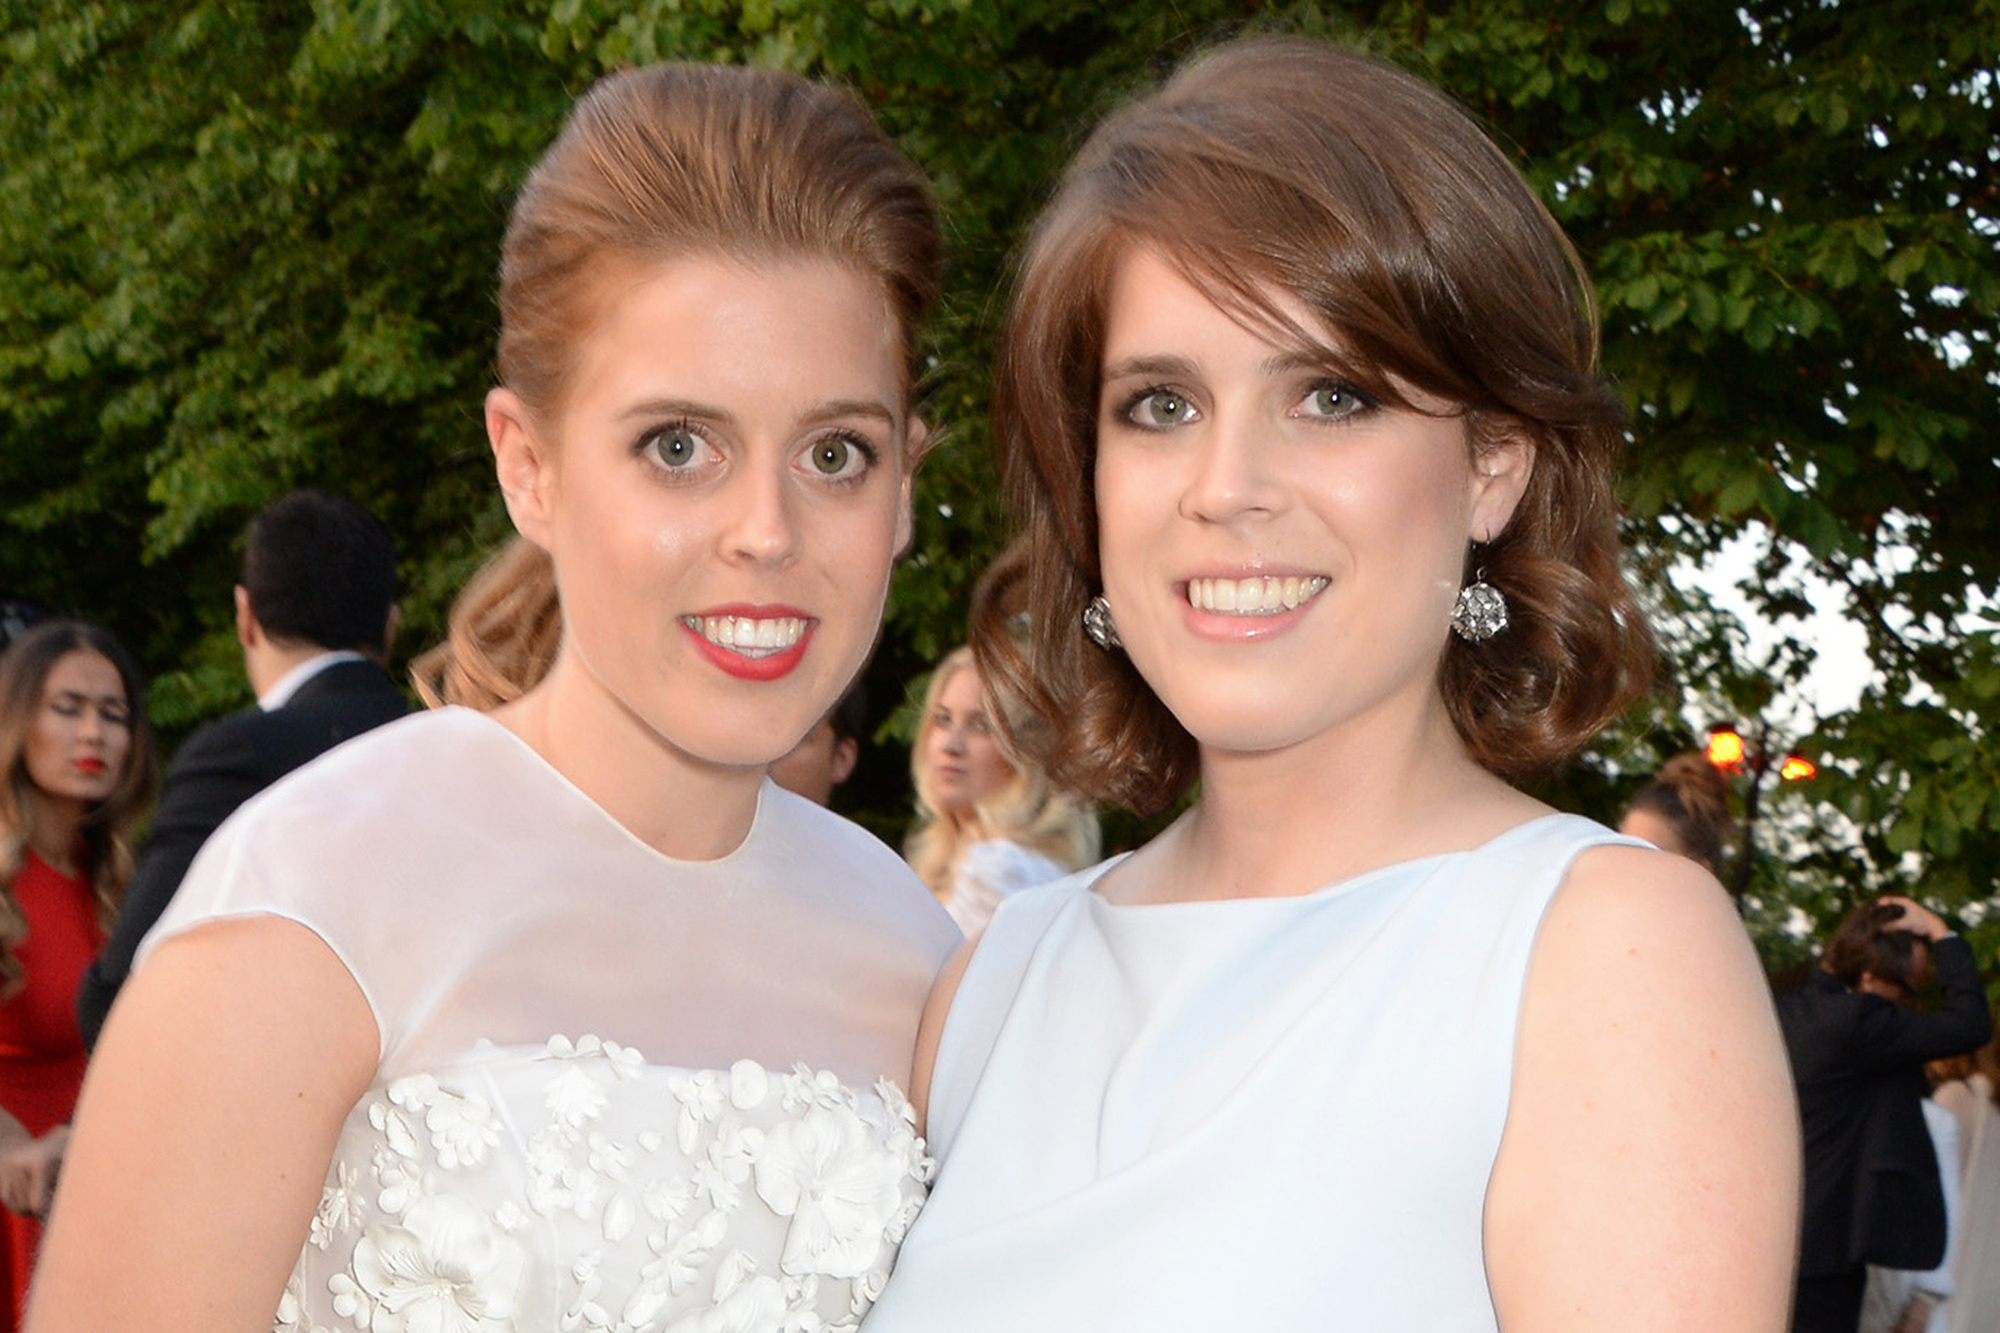 LONDON, ENGLAND - JULY 01: Princess Beatrice of York (L) and Princess Eugenie of York attend The Serpentine Gallery Summer Party co-hosted by Brioni at The Serpentine Gallery on July 1, 2014 in London, England. (Photo by David M. Benett/Getty Images for The Serpentine)